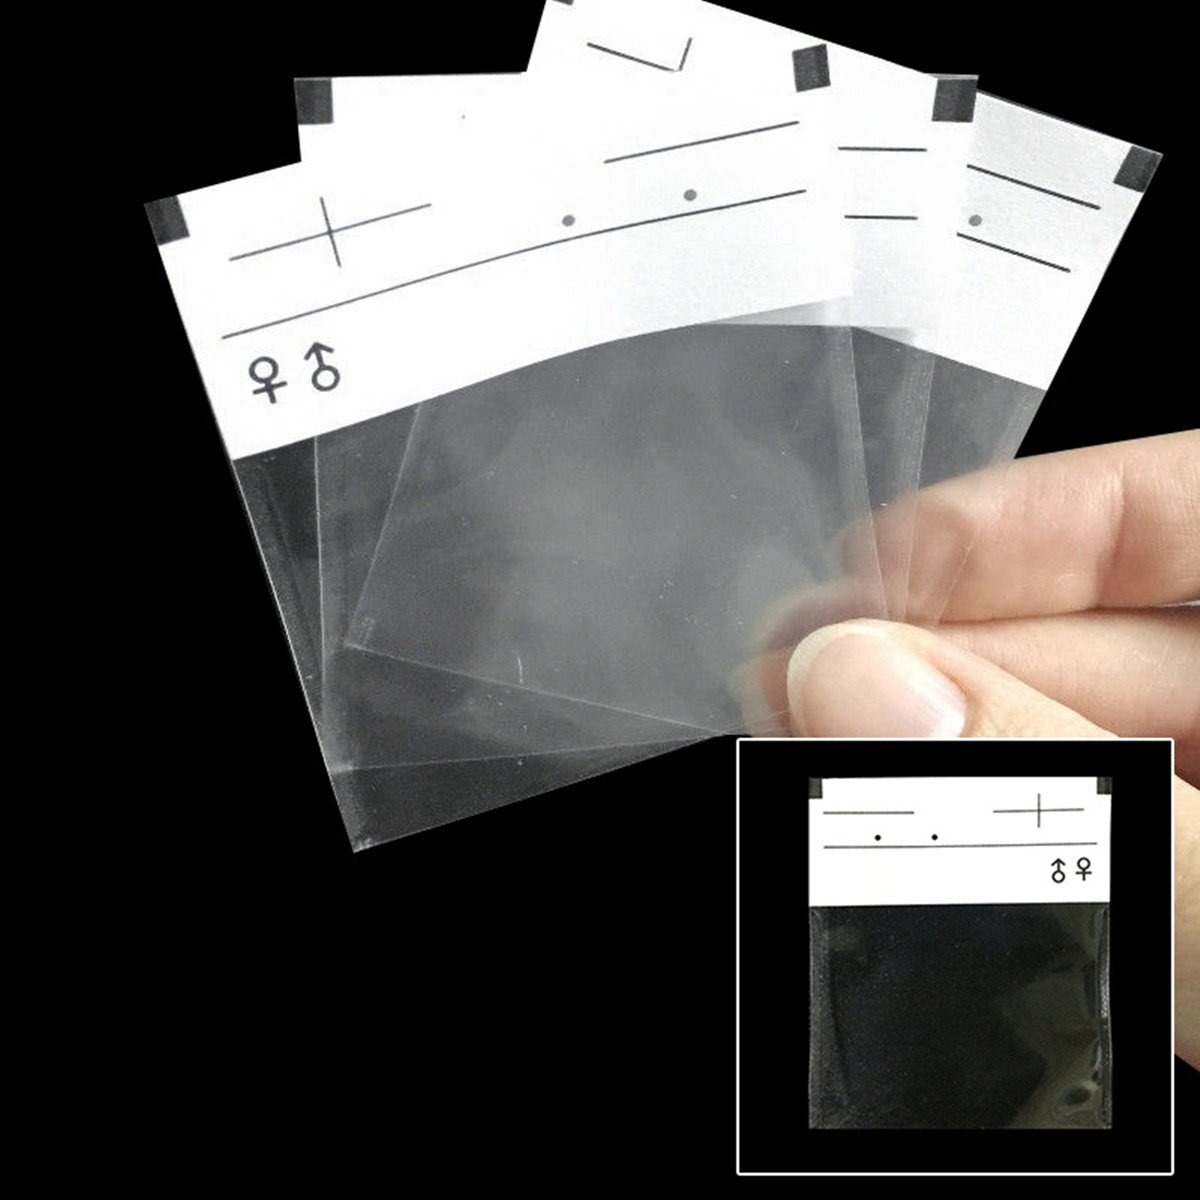 200pcs Dental X-ray Film Mounts Envelope Sleeves Holder